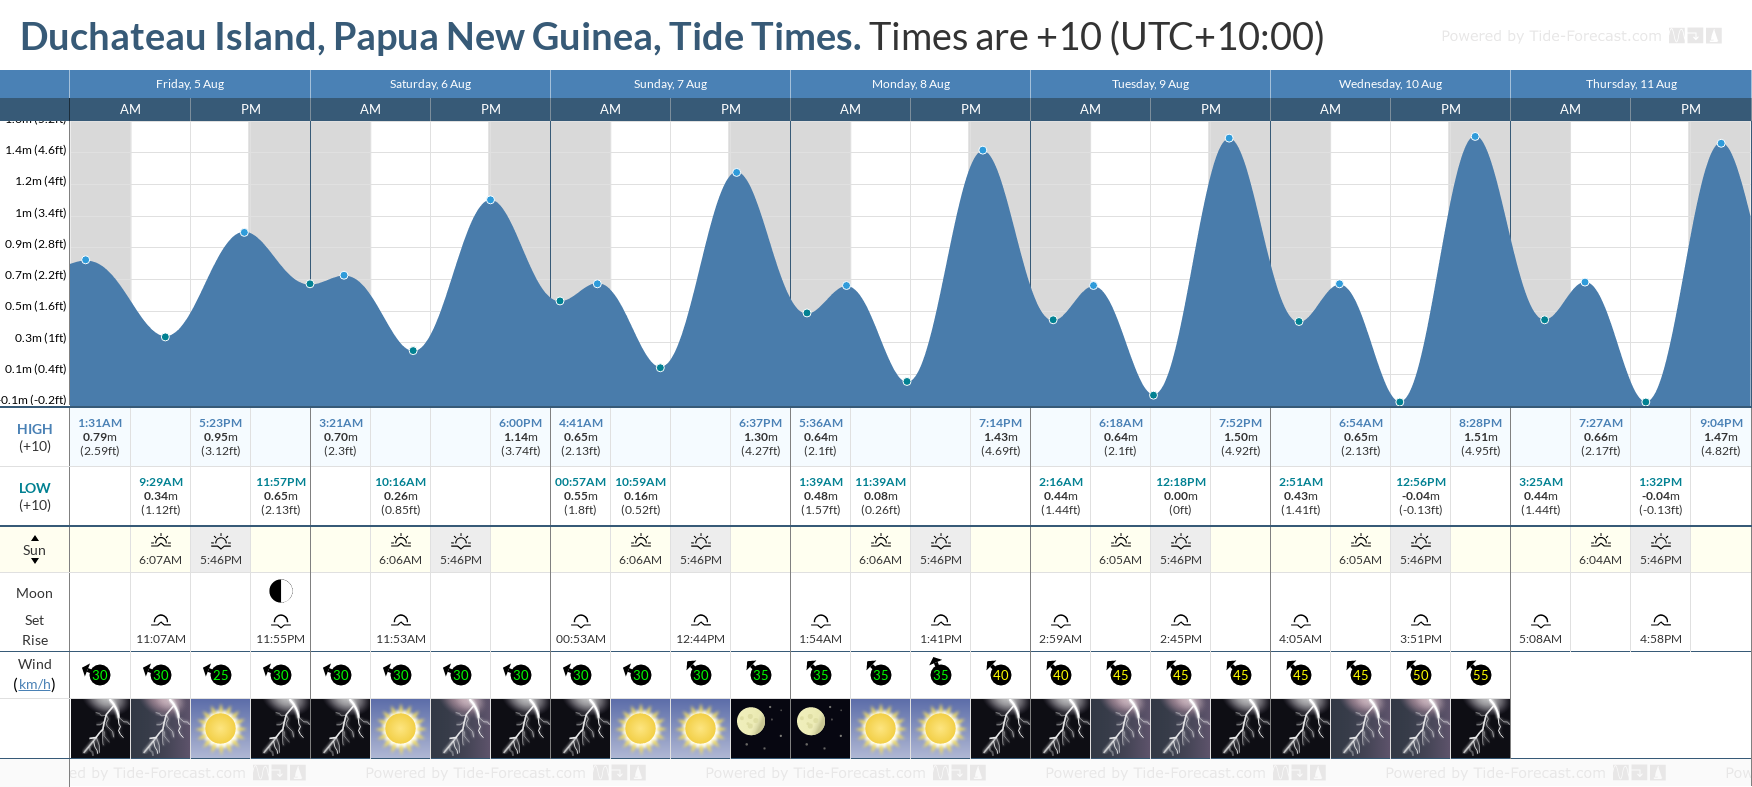 Duchateau Island, Papua New Guinea Tide Chart including high and low tide tide times for the next 7 days